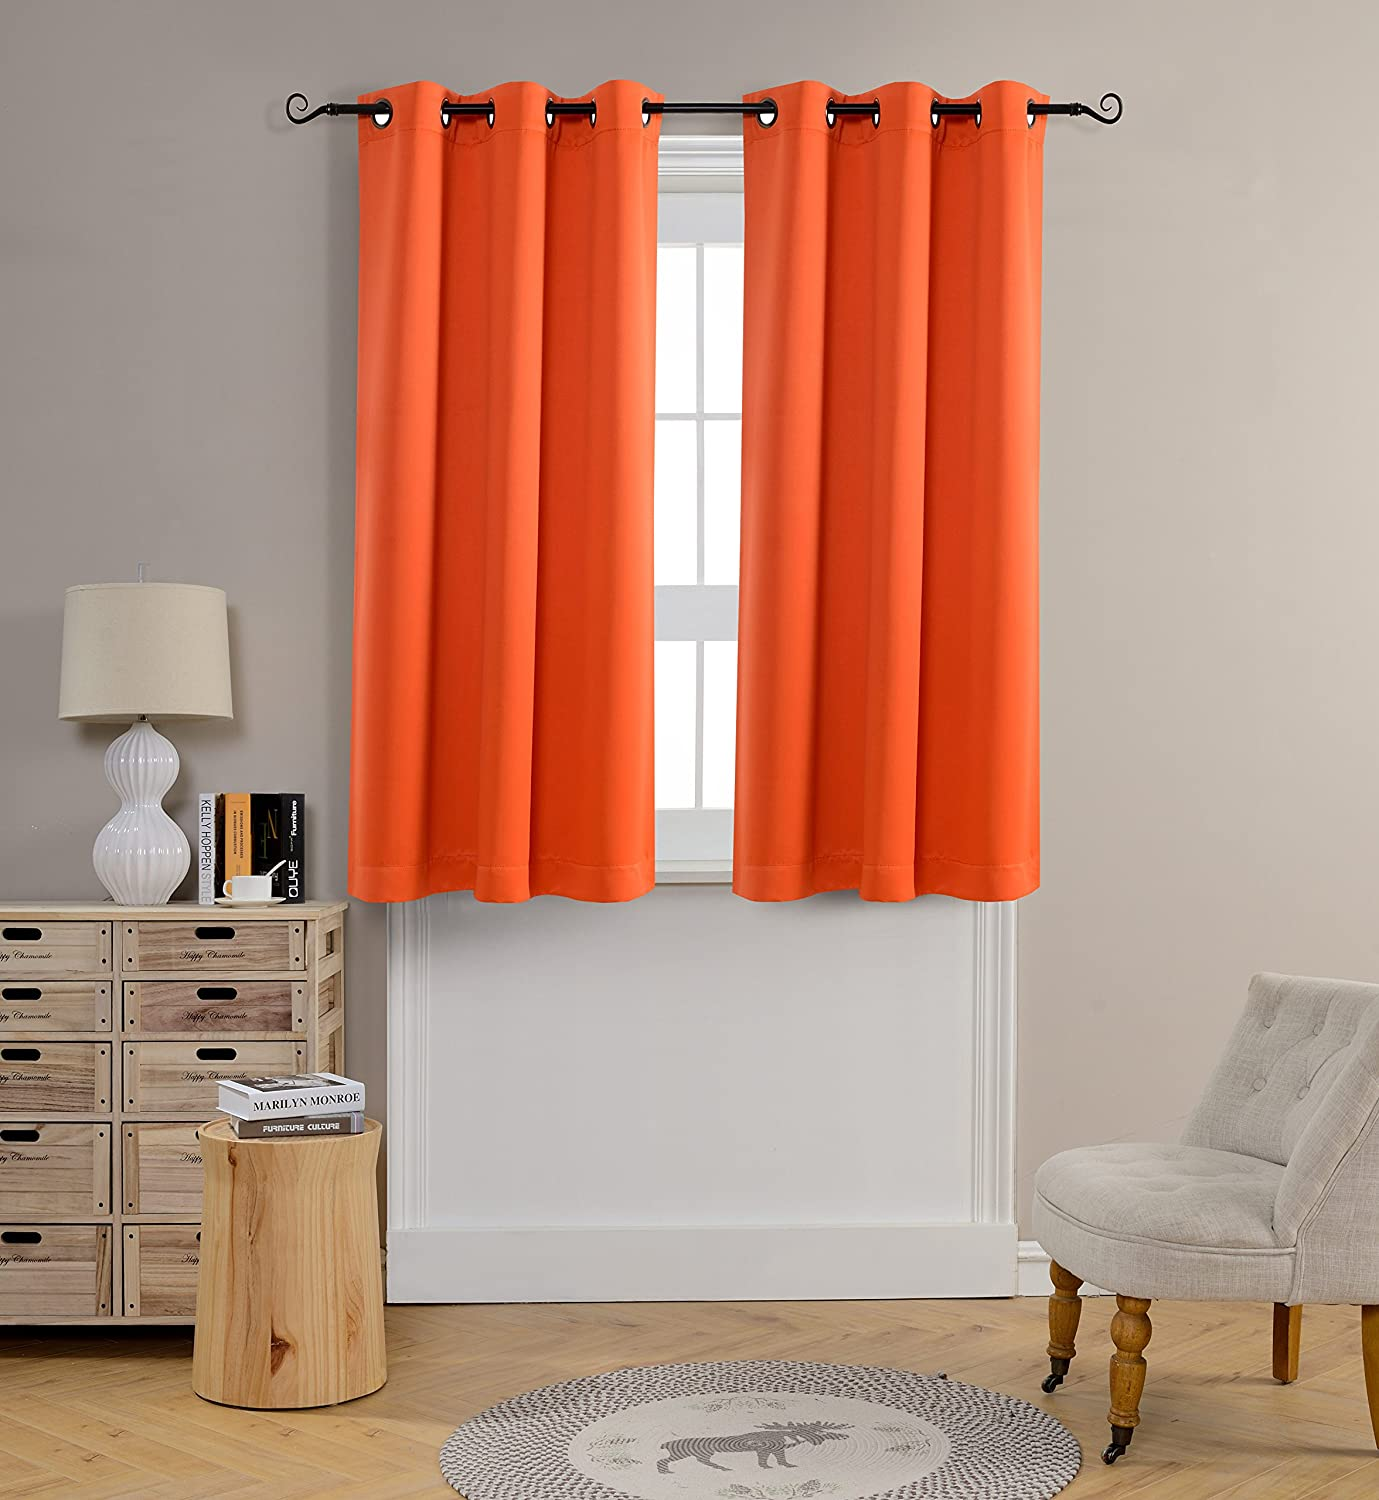 Orange Mysky Home Grommet top Thermal Insulated Window Blackout Curtain